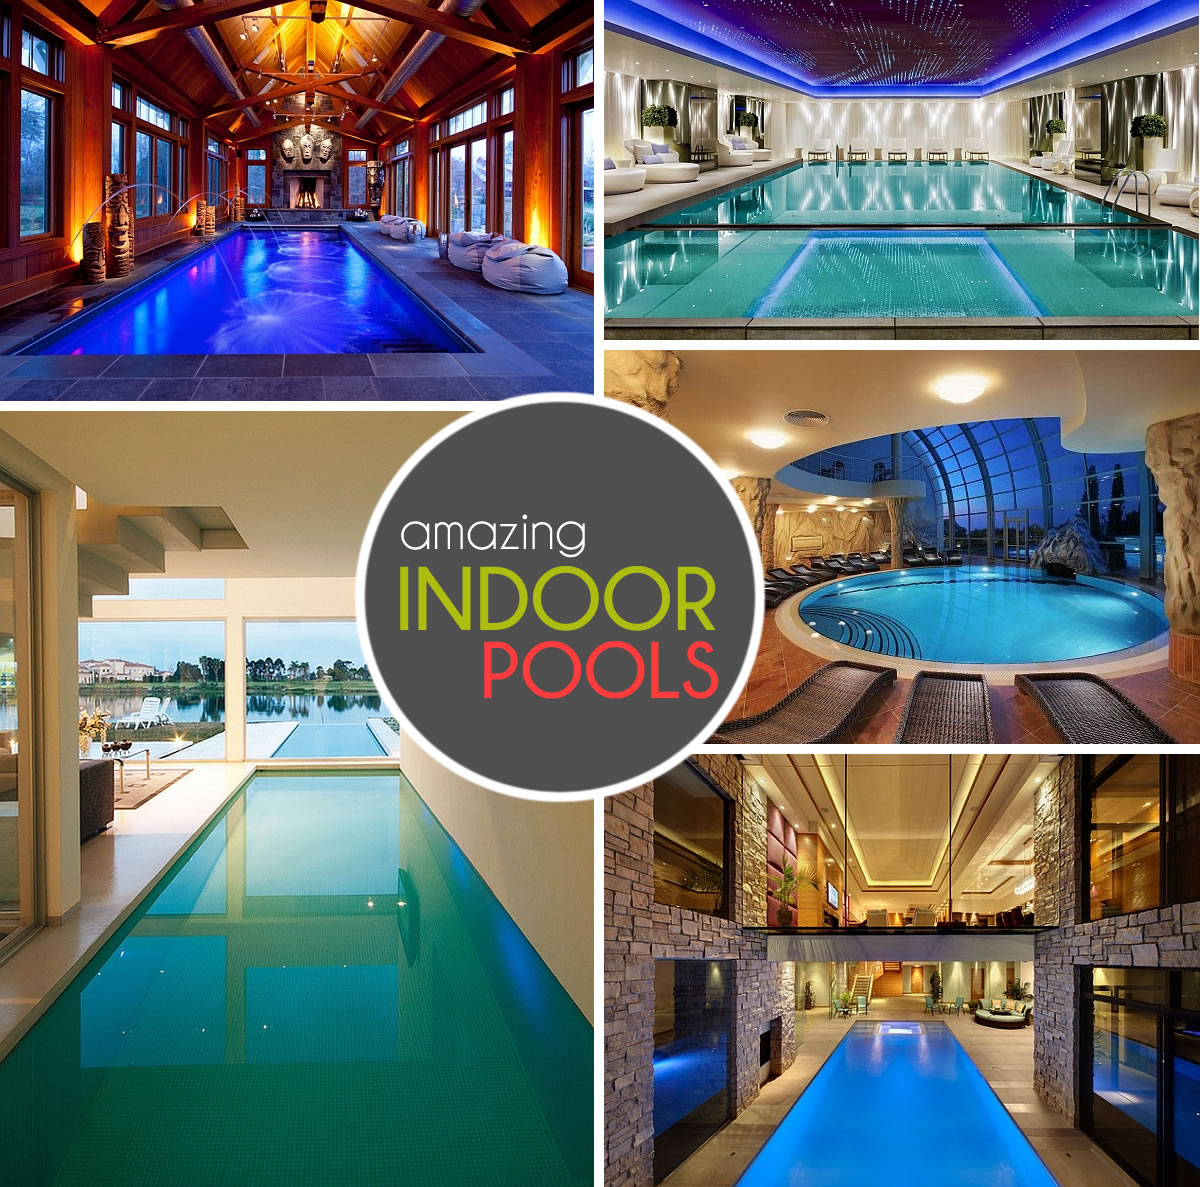 Indoor Swimming Pool With Slides 50+ indoor swimming pool ideas: taking a dip in style